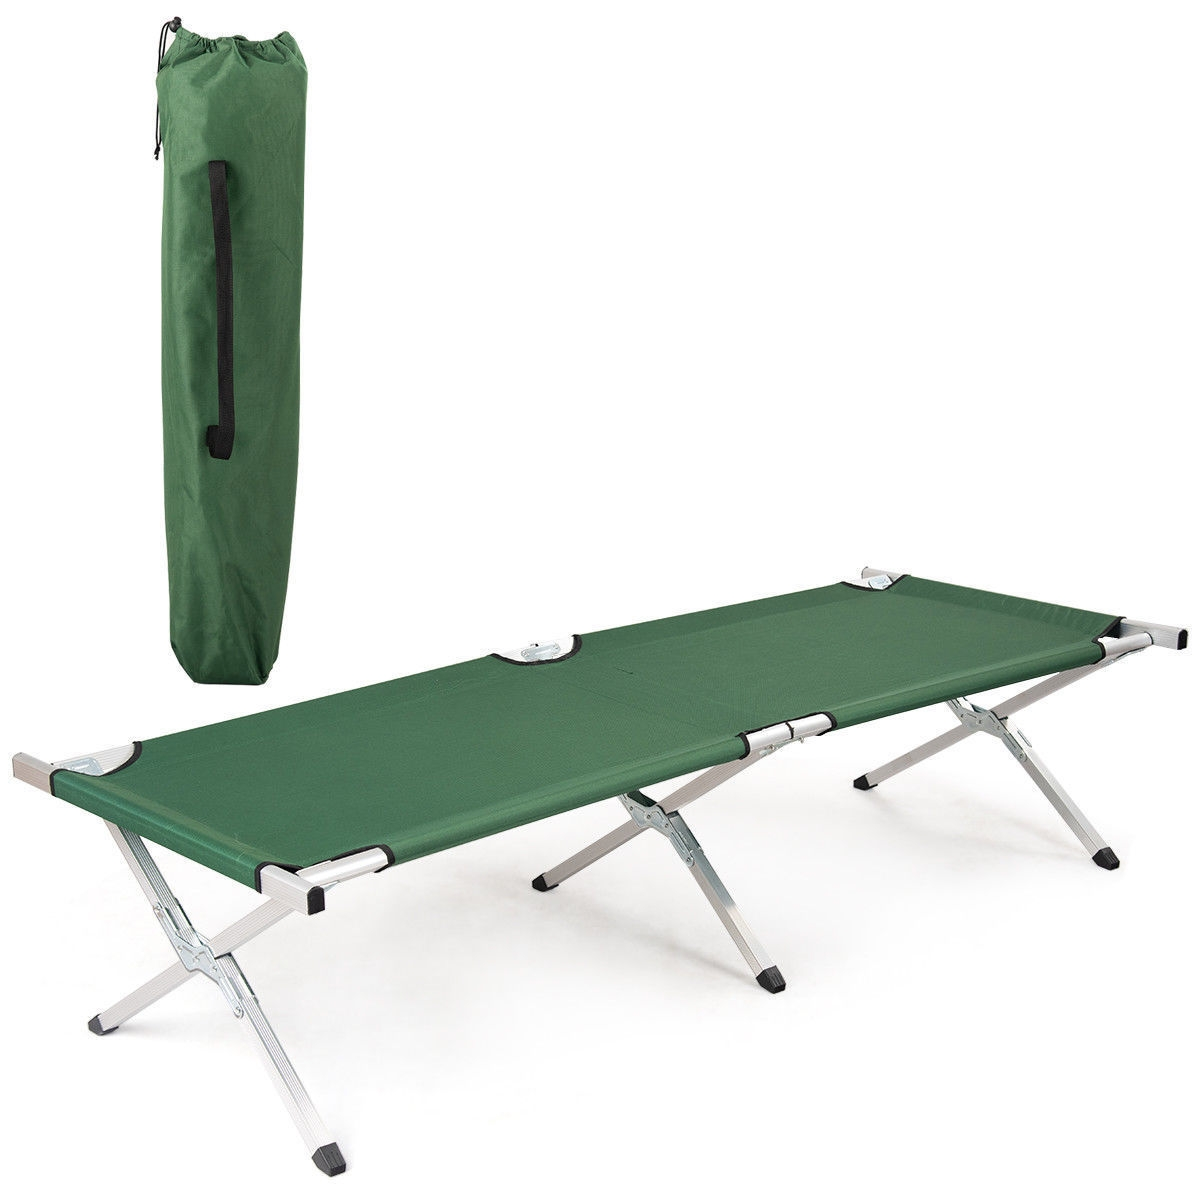 Foldable Camping Hiking Bed Portable Military Cot w/ Carrying Bag-Green